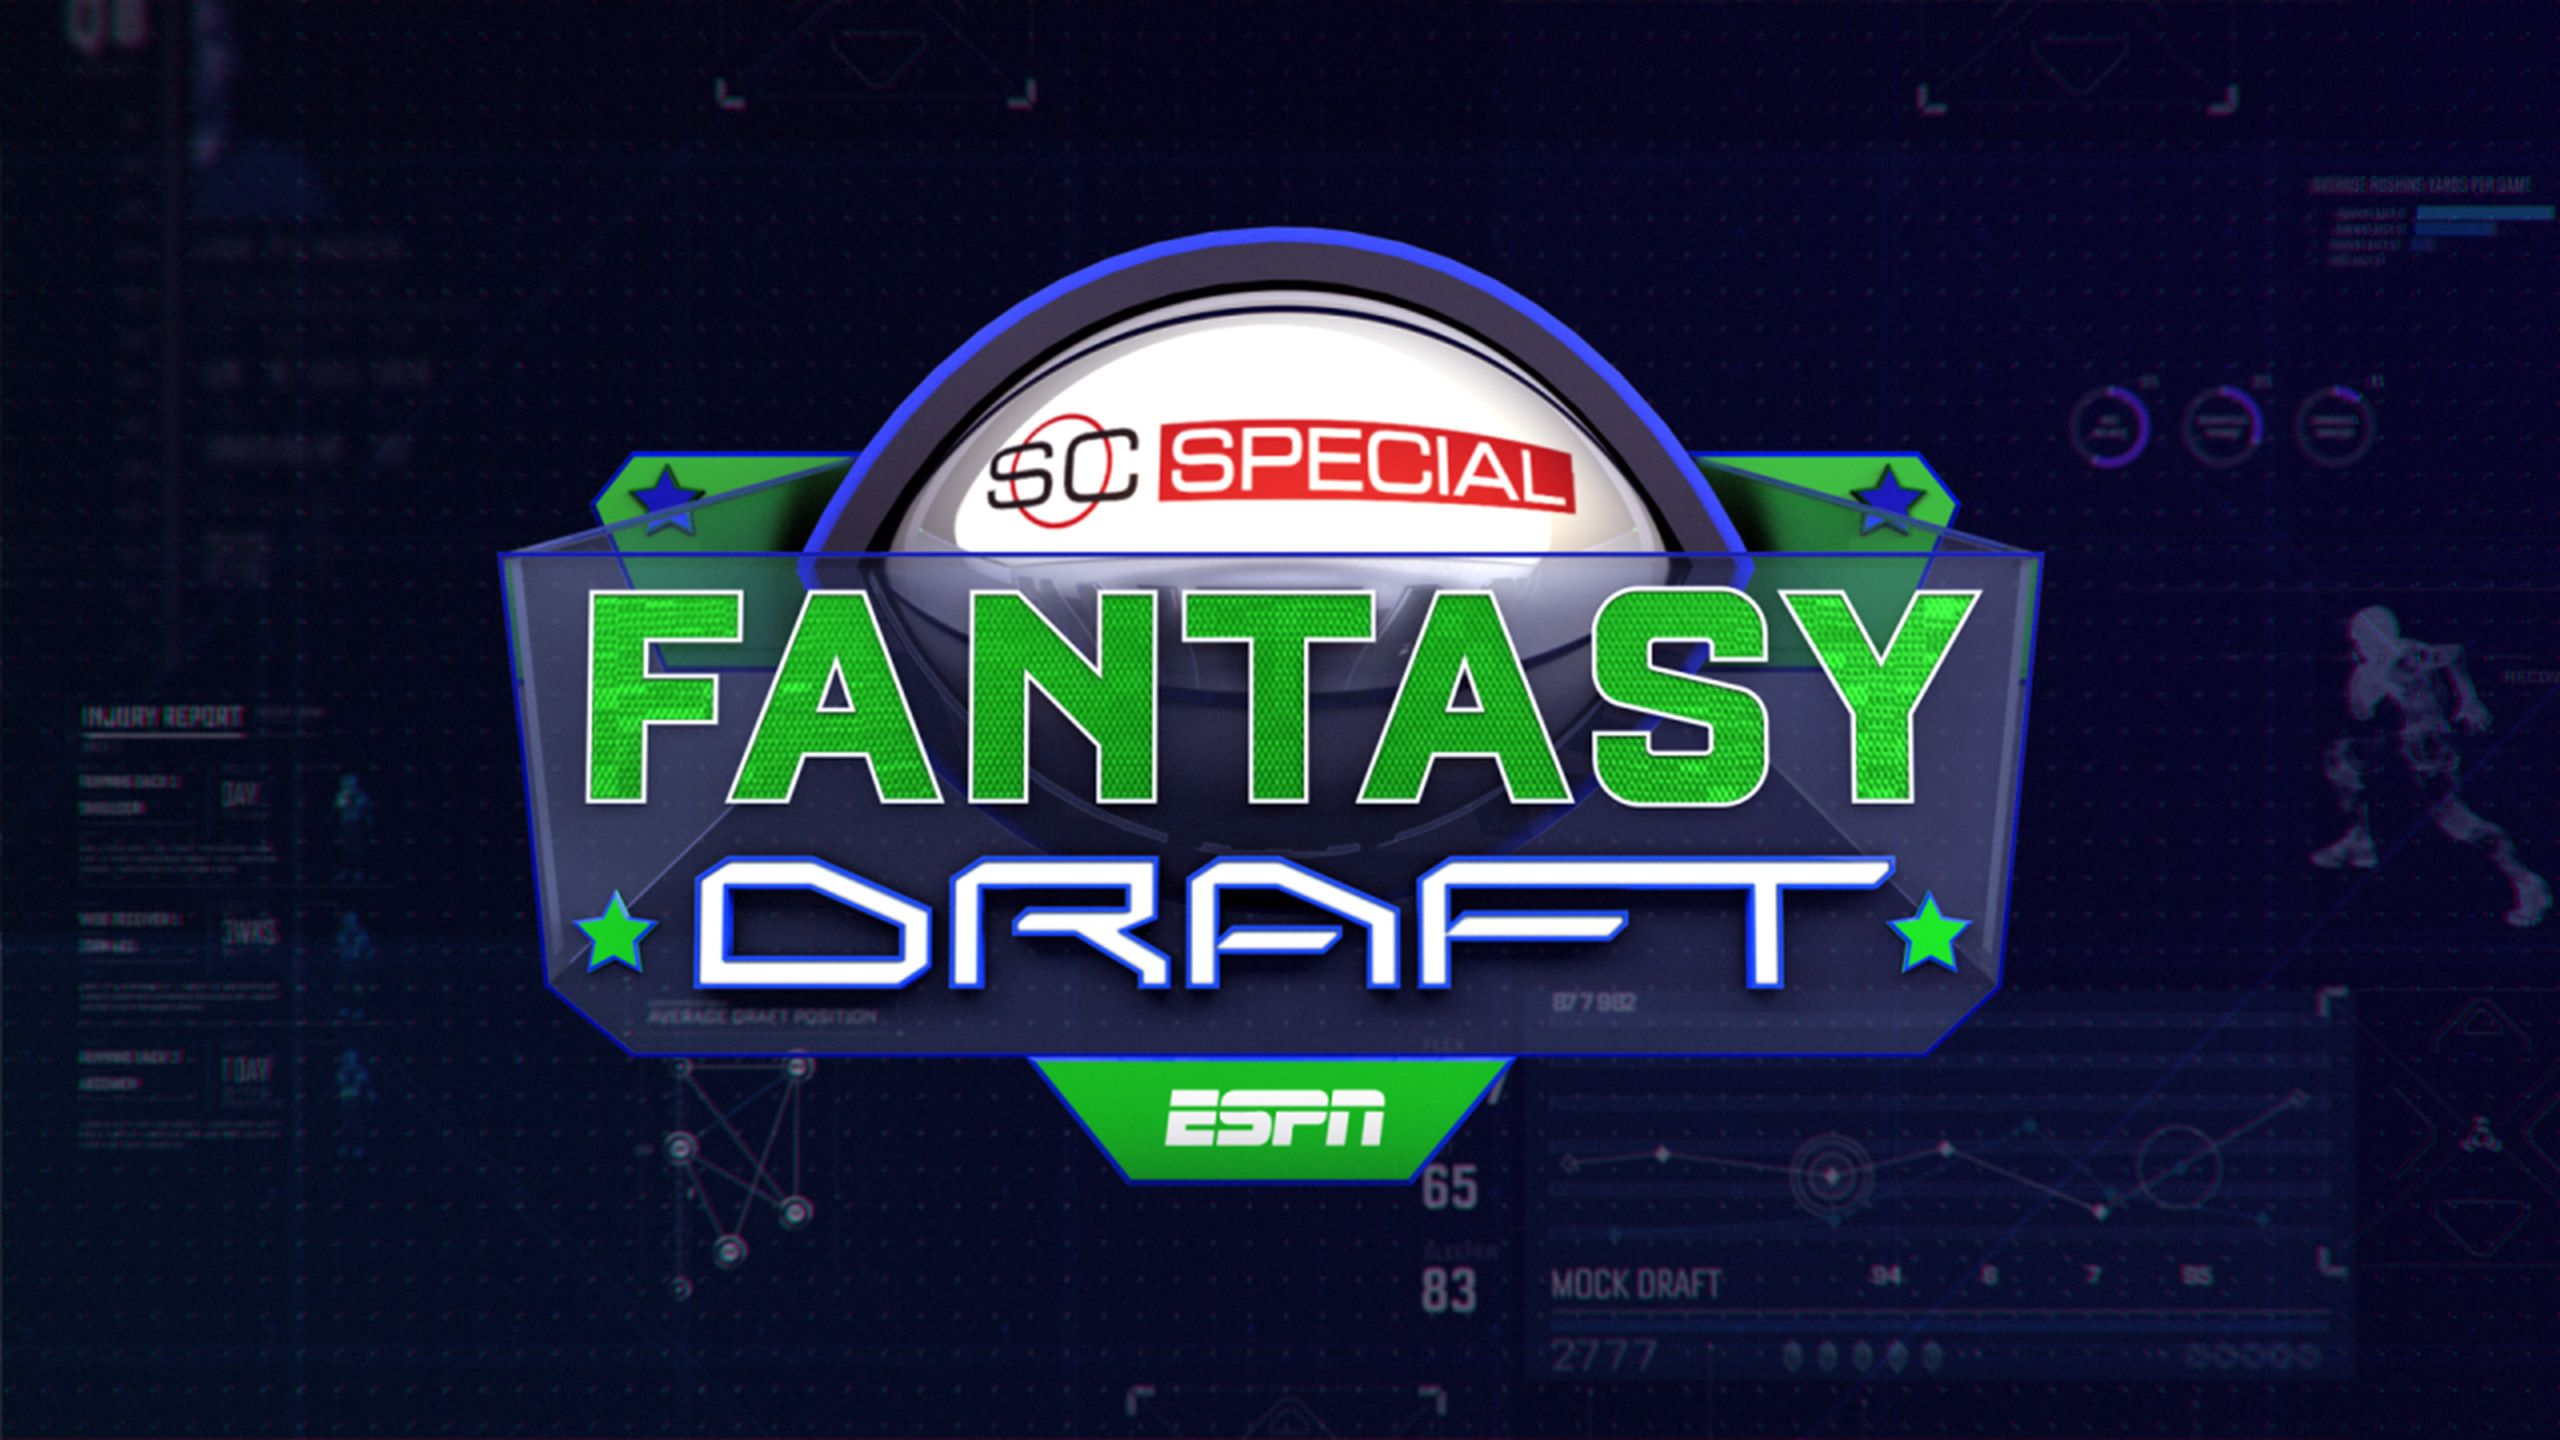 SportsCenter Special: Fantasy Football Draft